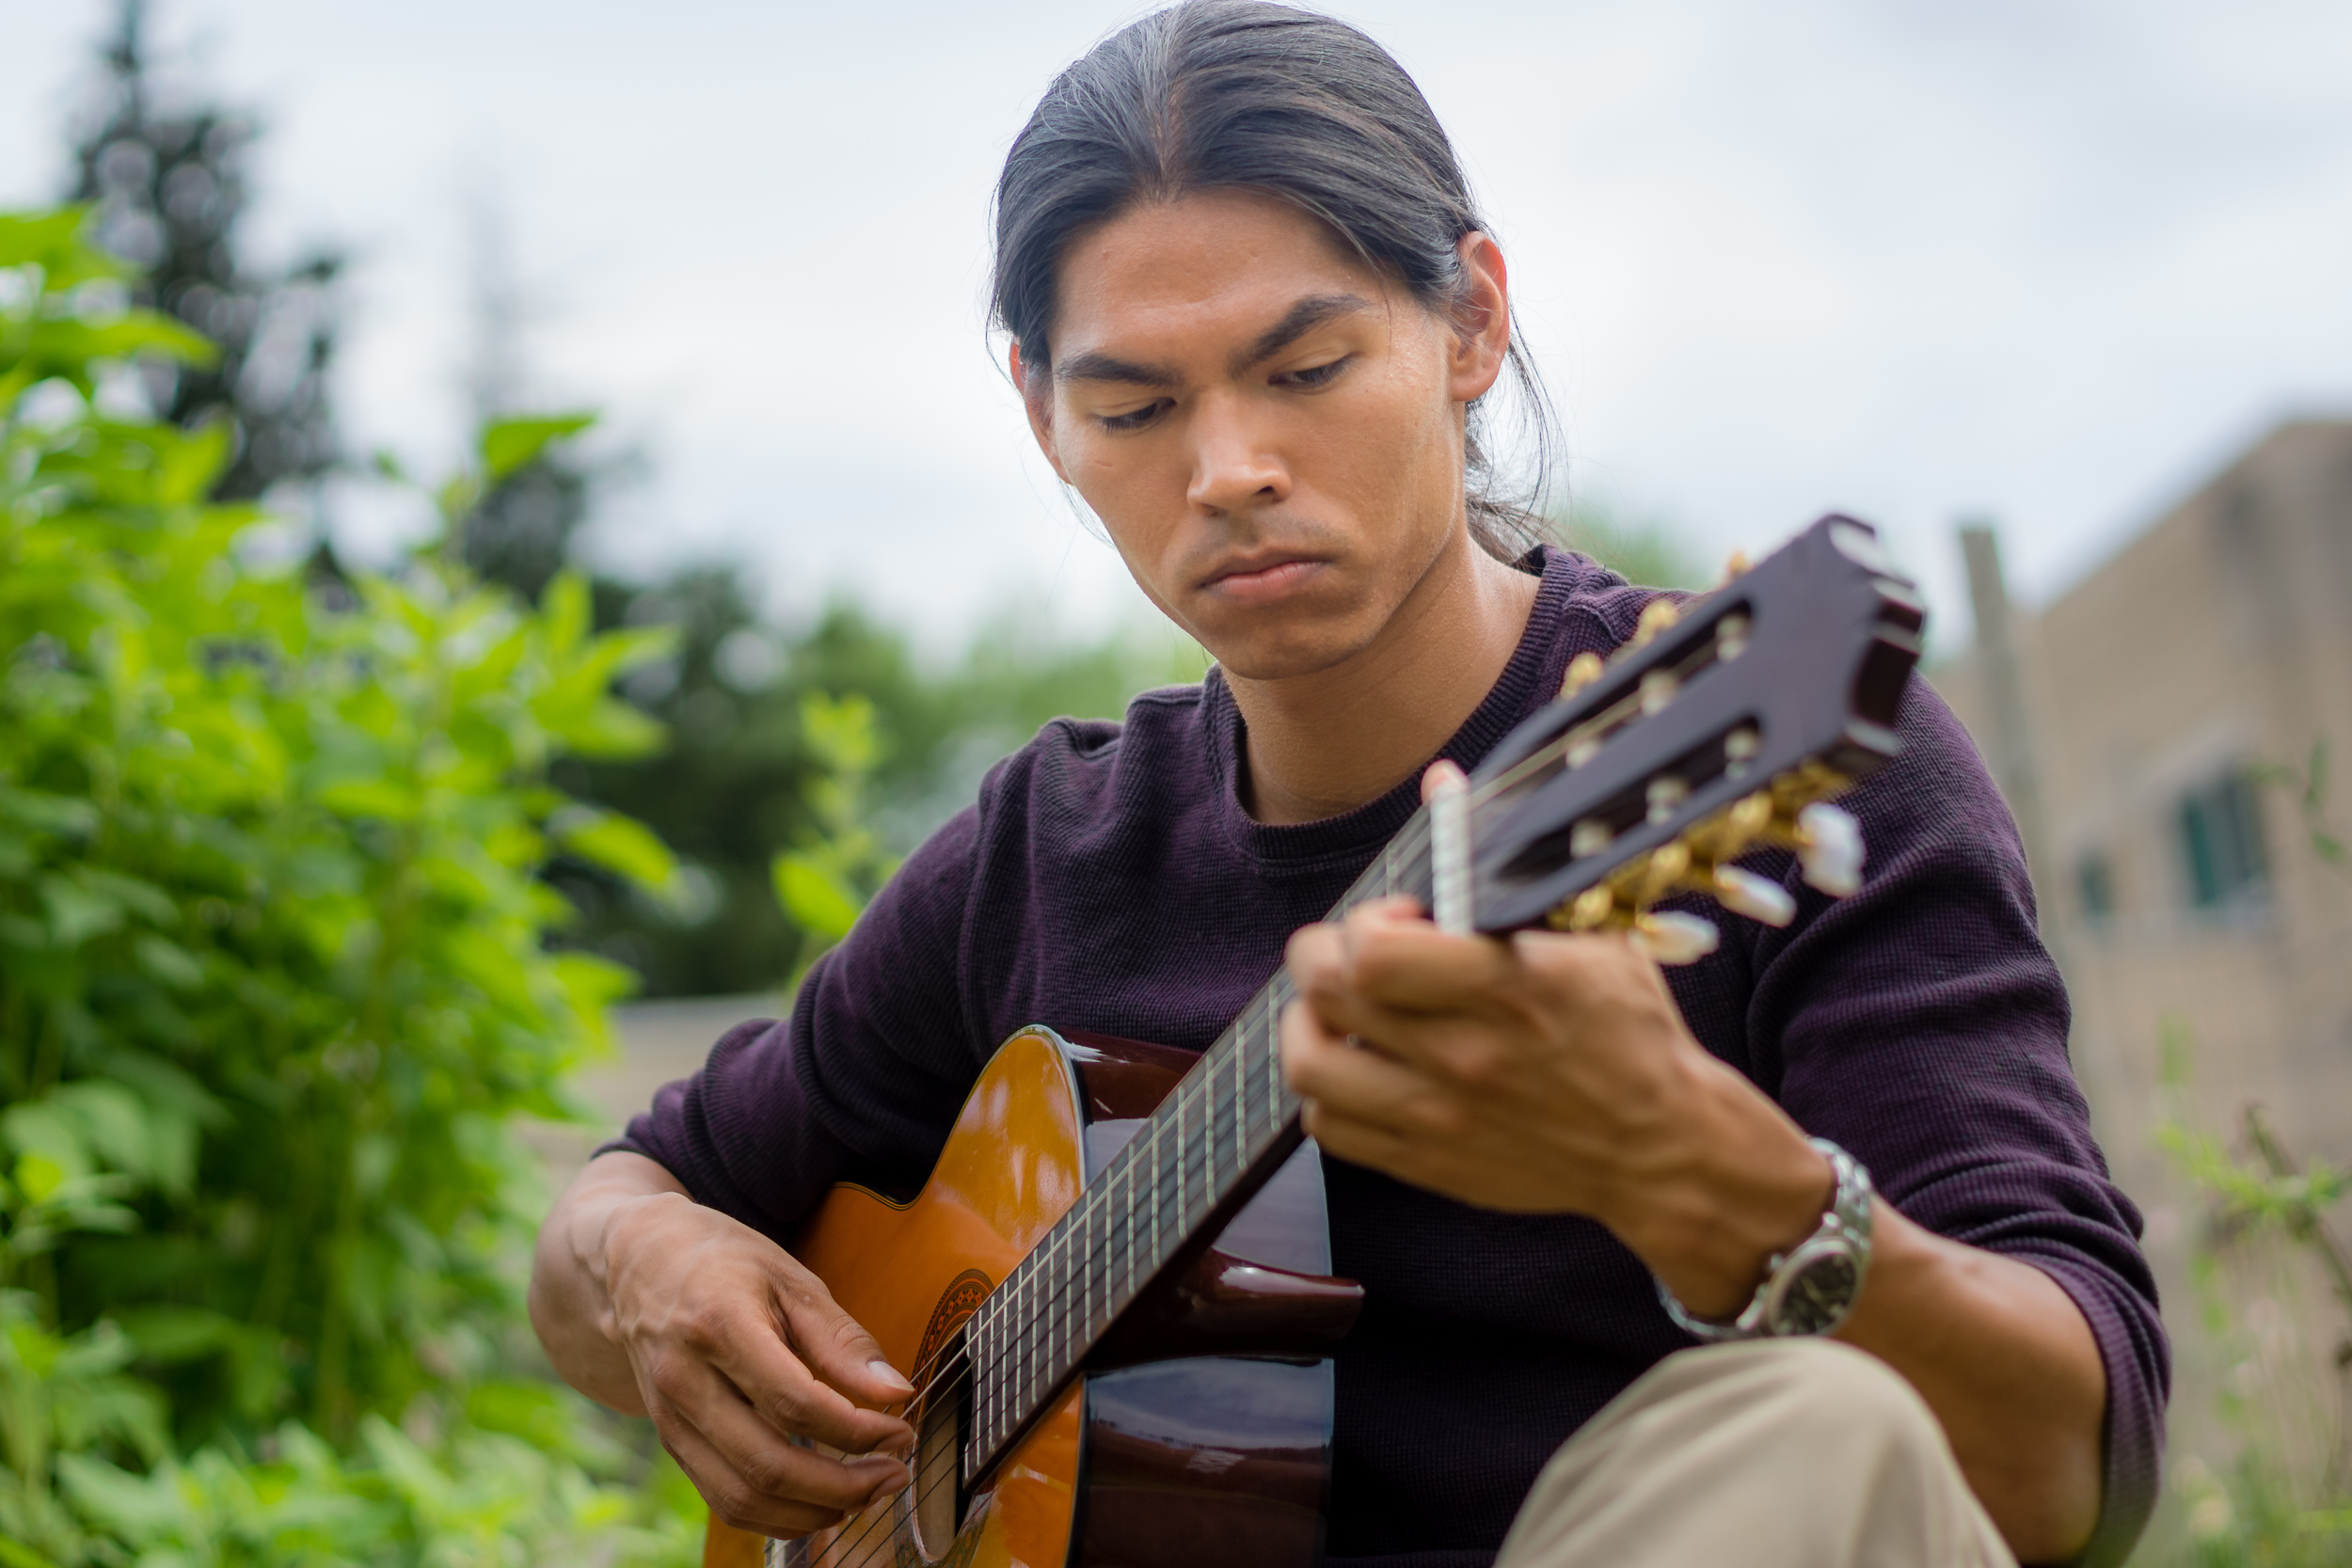 Playing music in the garden - one of my favourites.